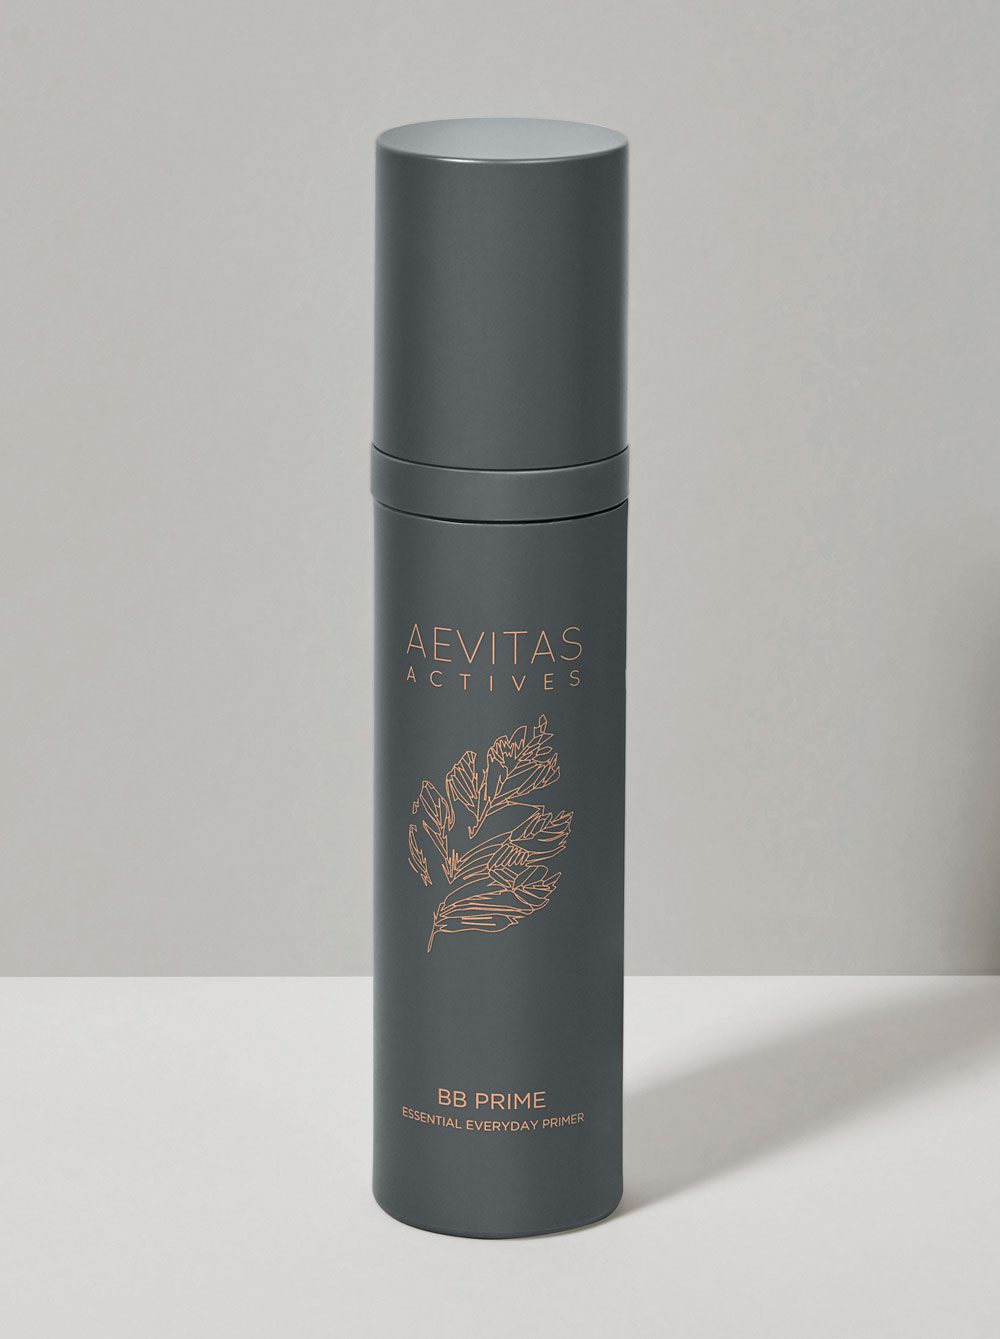 Aevitas_BB-Prime_Bottle.jpg